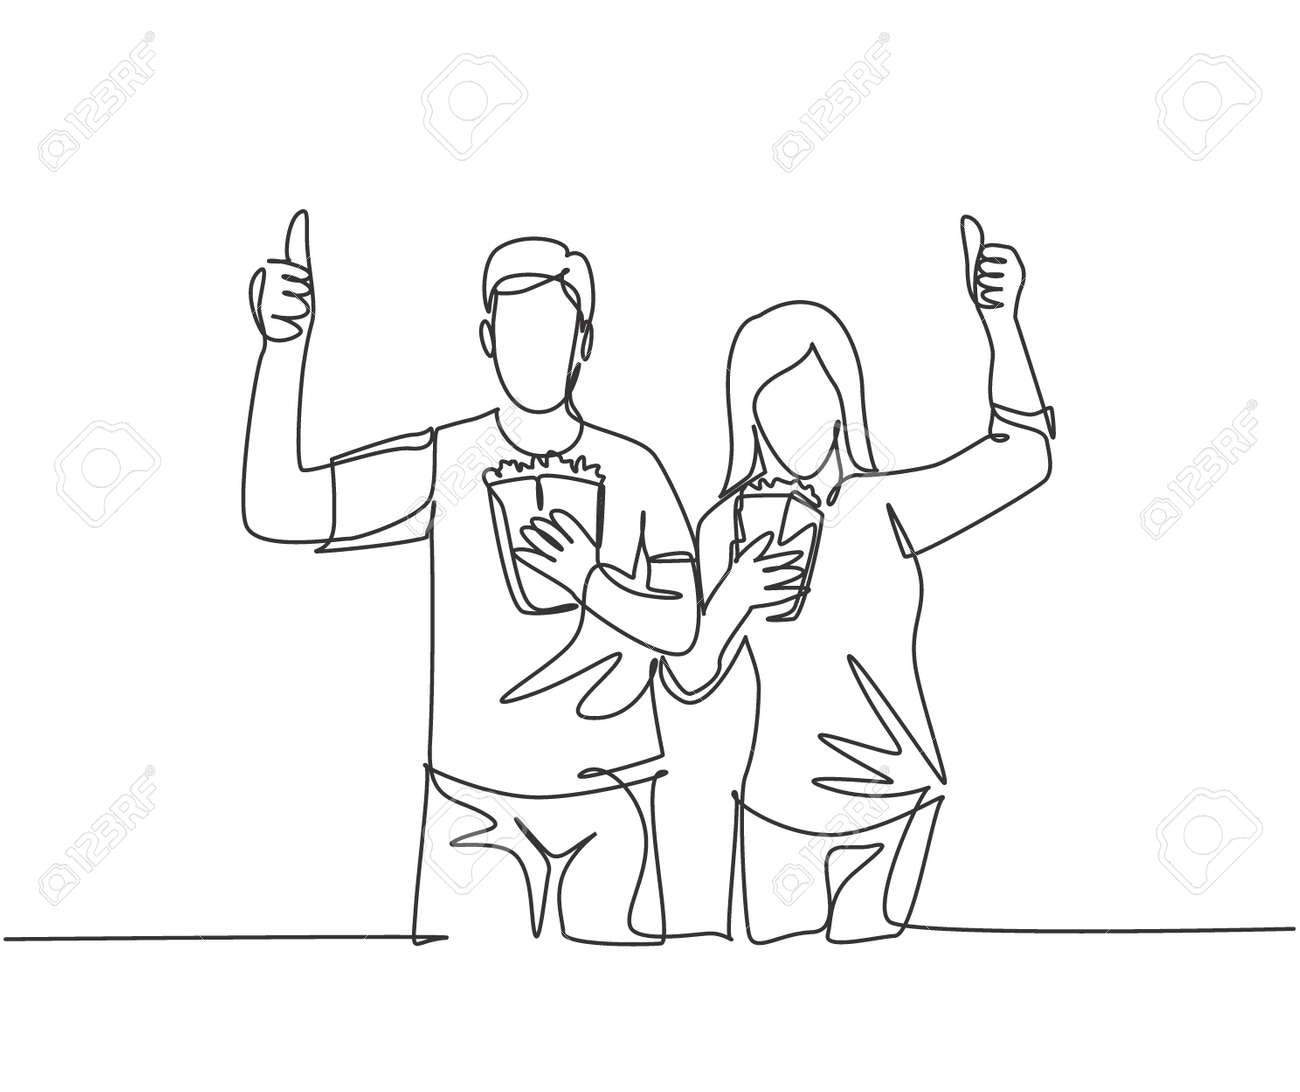 One line drawing of young happy couple giving thumbs up gesture and holding pop corn ready to watch the movie on theater. Entertainment concept. Continuous line graphic draw design vector illustration - 150288809